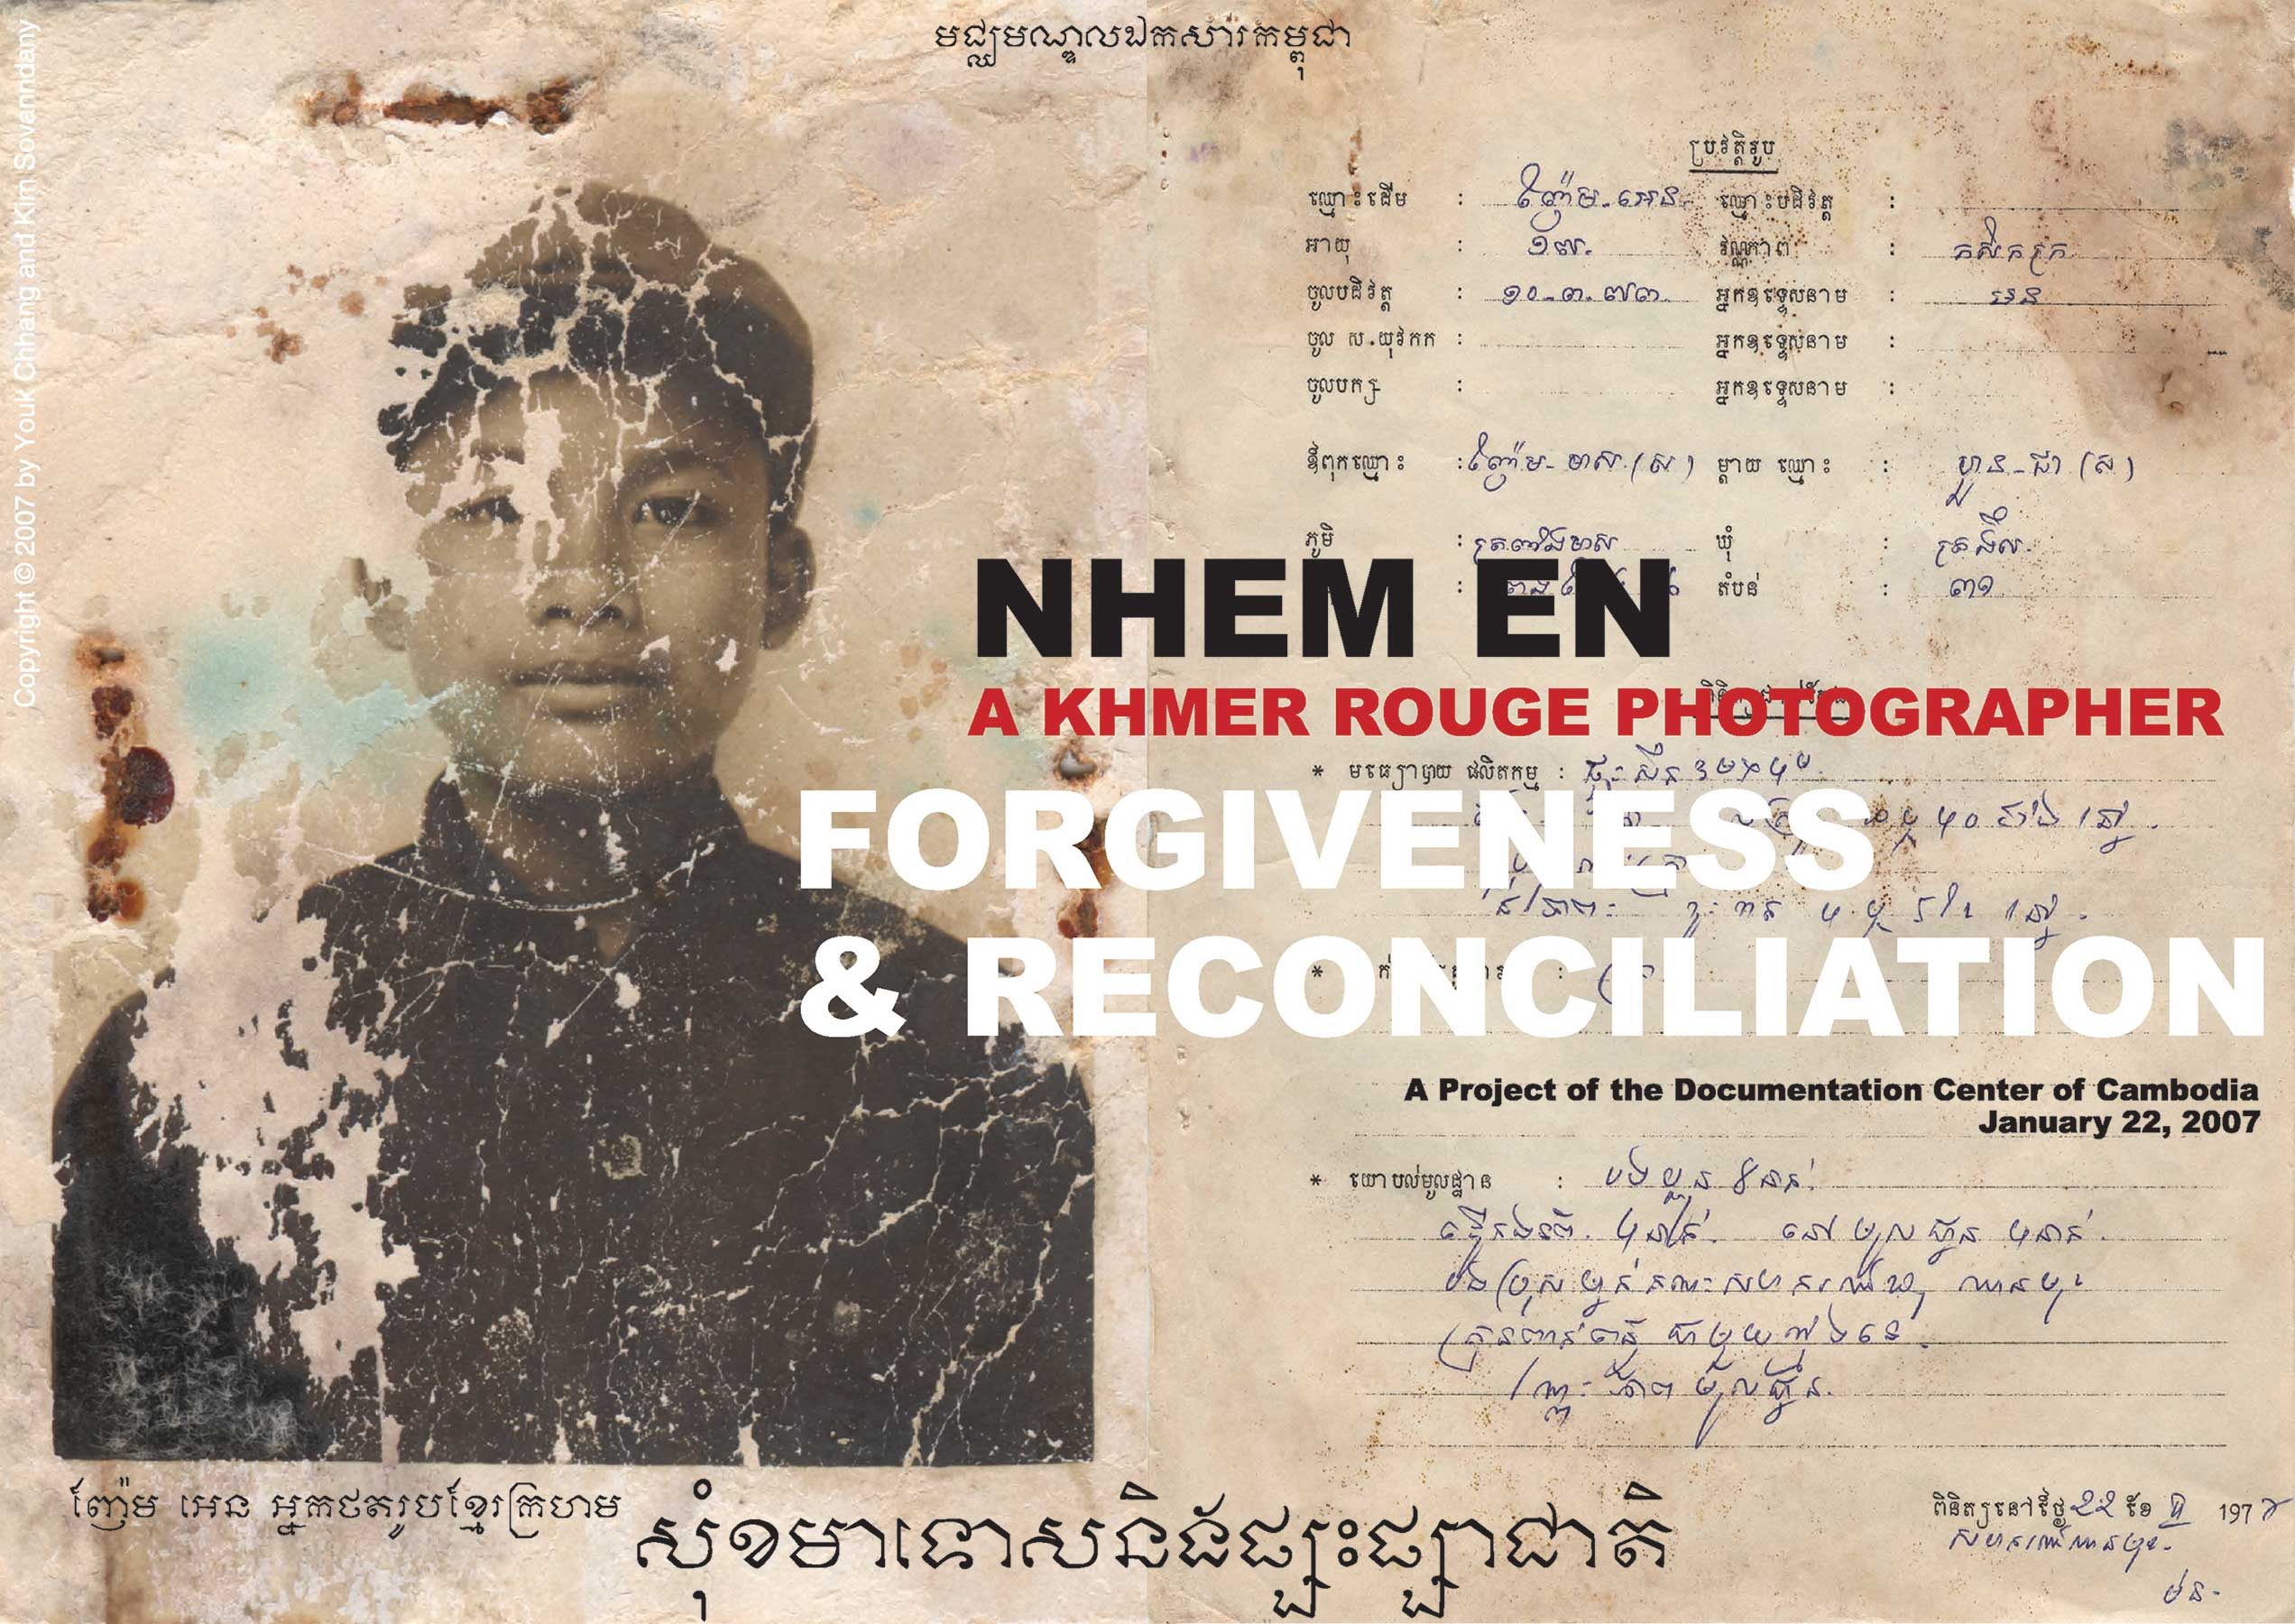 KHMER ROUGE PHOTOGRAPHER (2006)